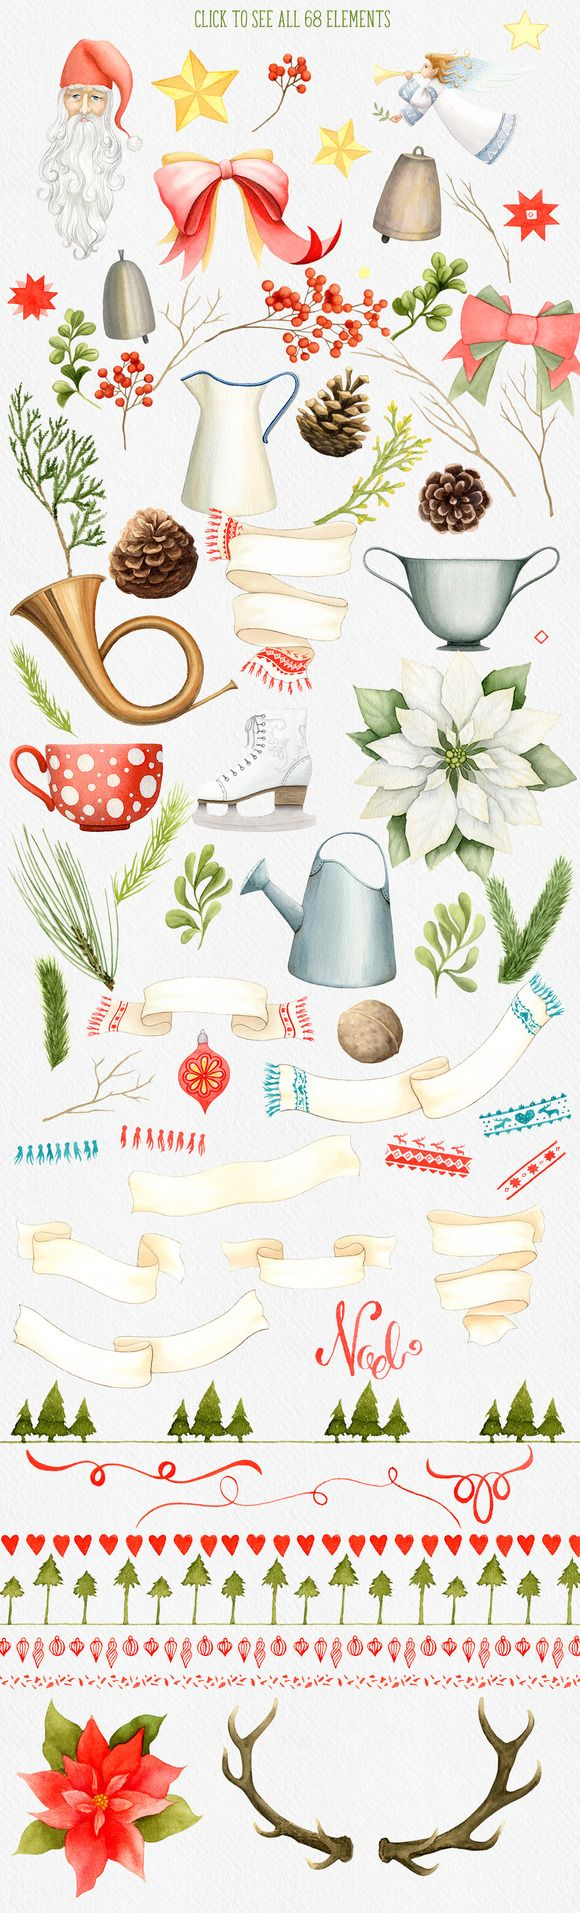 Watercolor illustration clipart for winter and Christmas designs. Classic color and subjects #clipart  #Christmas